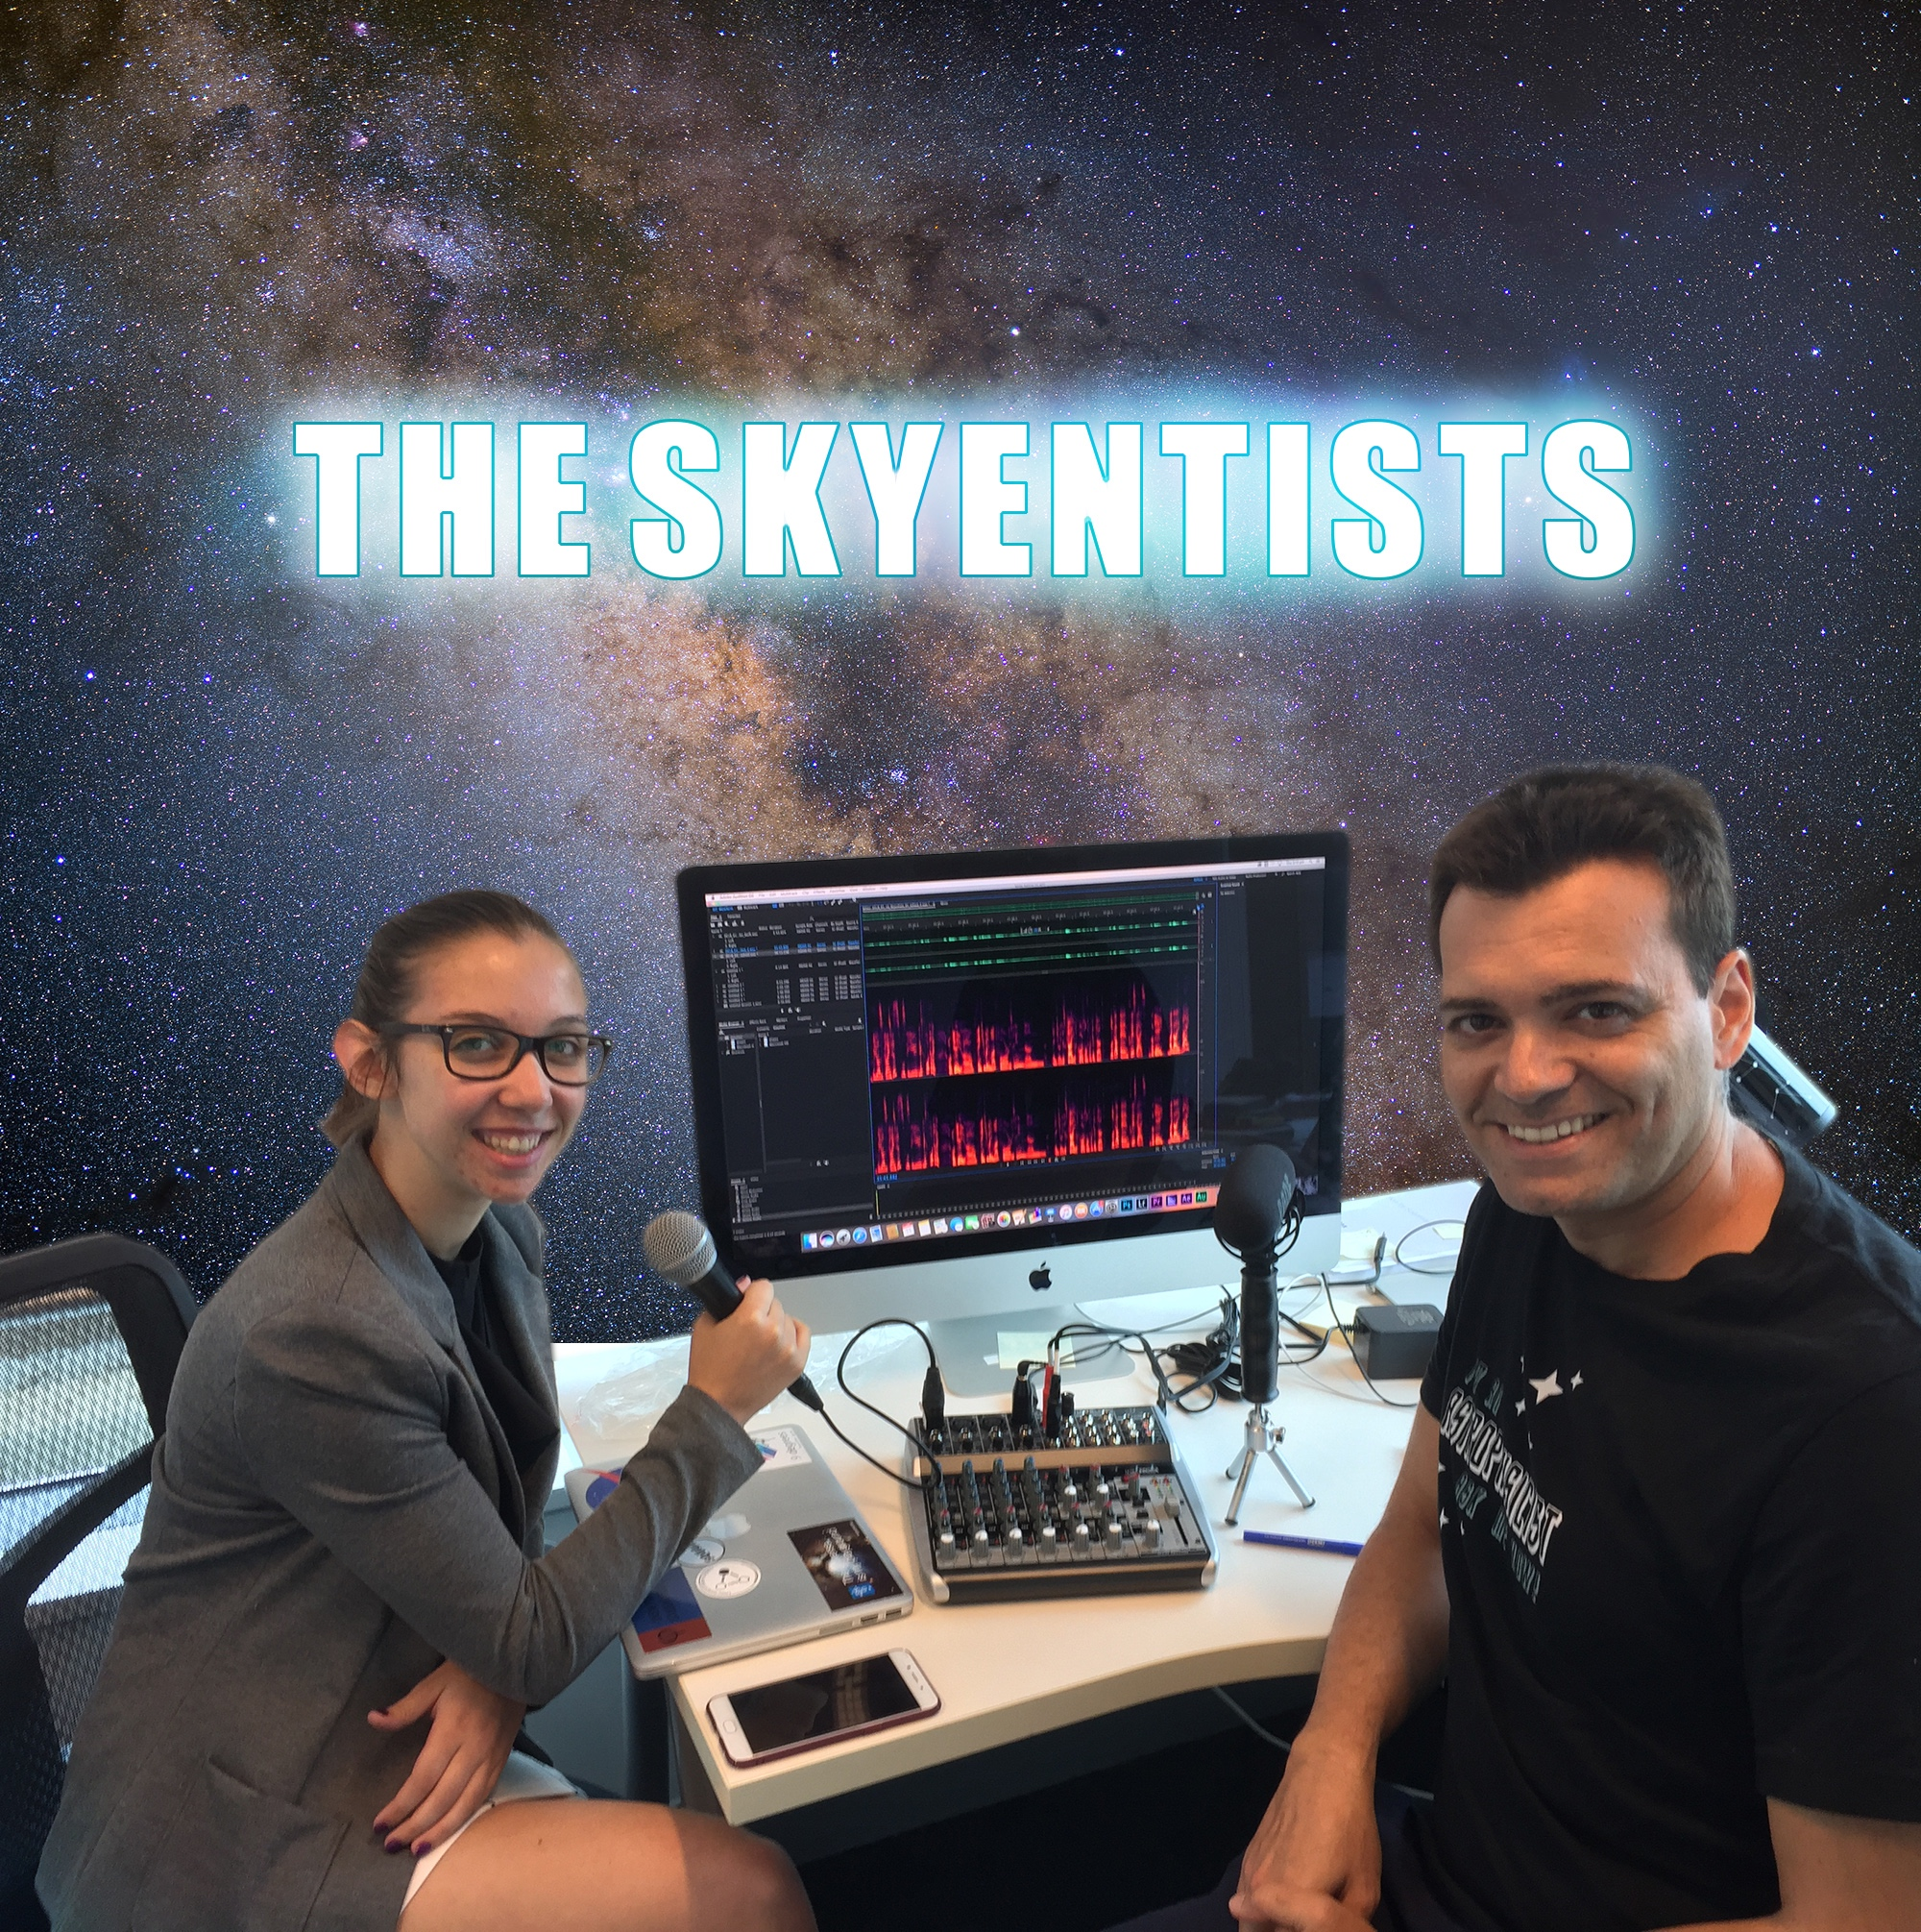 The Skyentists featuring Ángel and Kirsten sitting in front of a computer recording the podcast